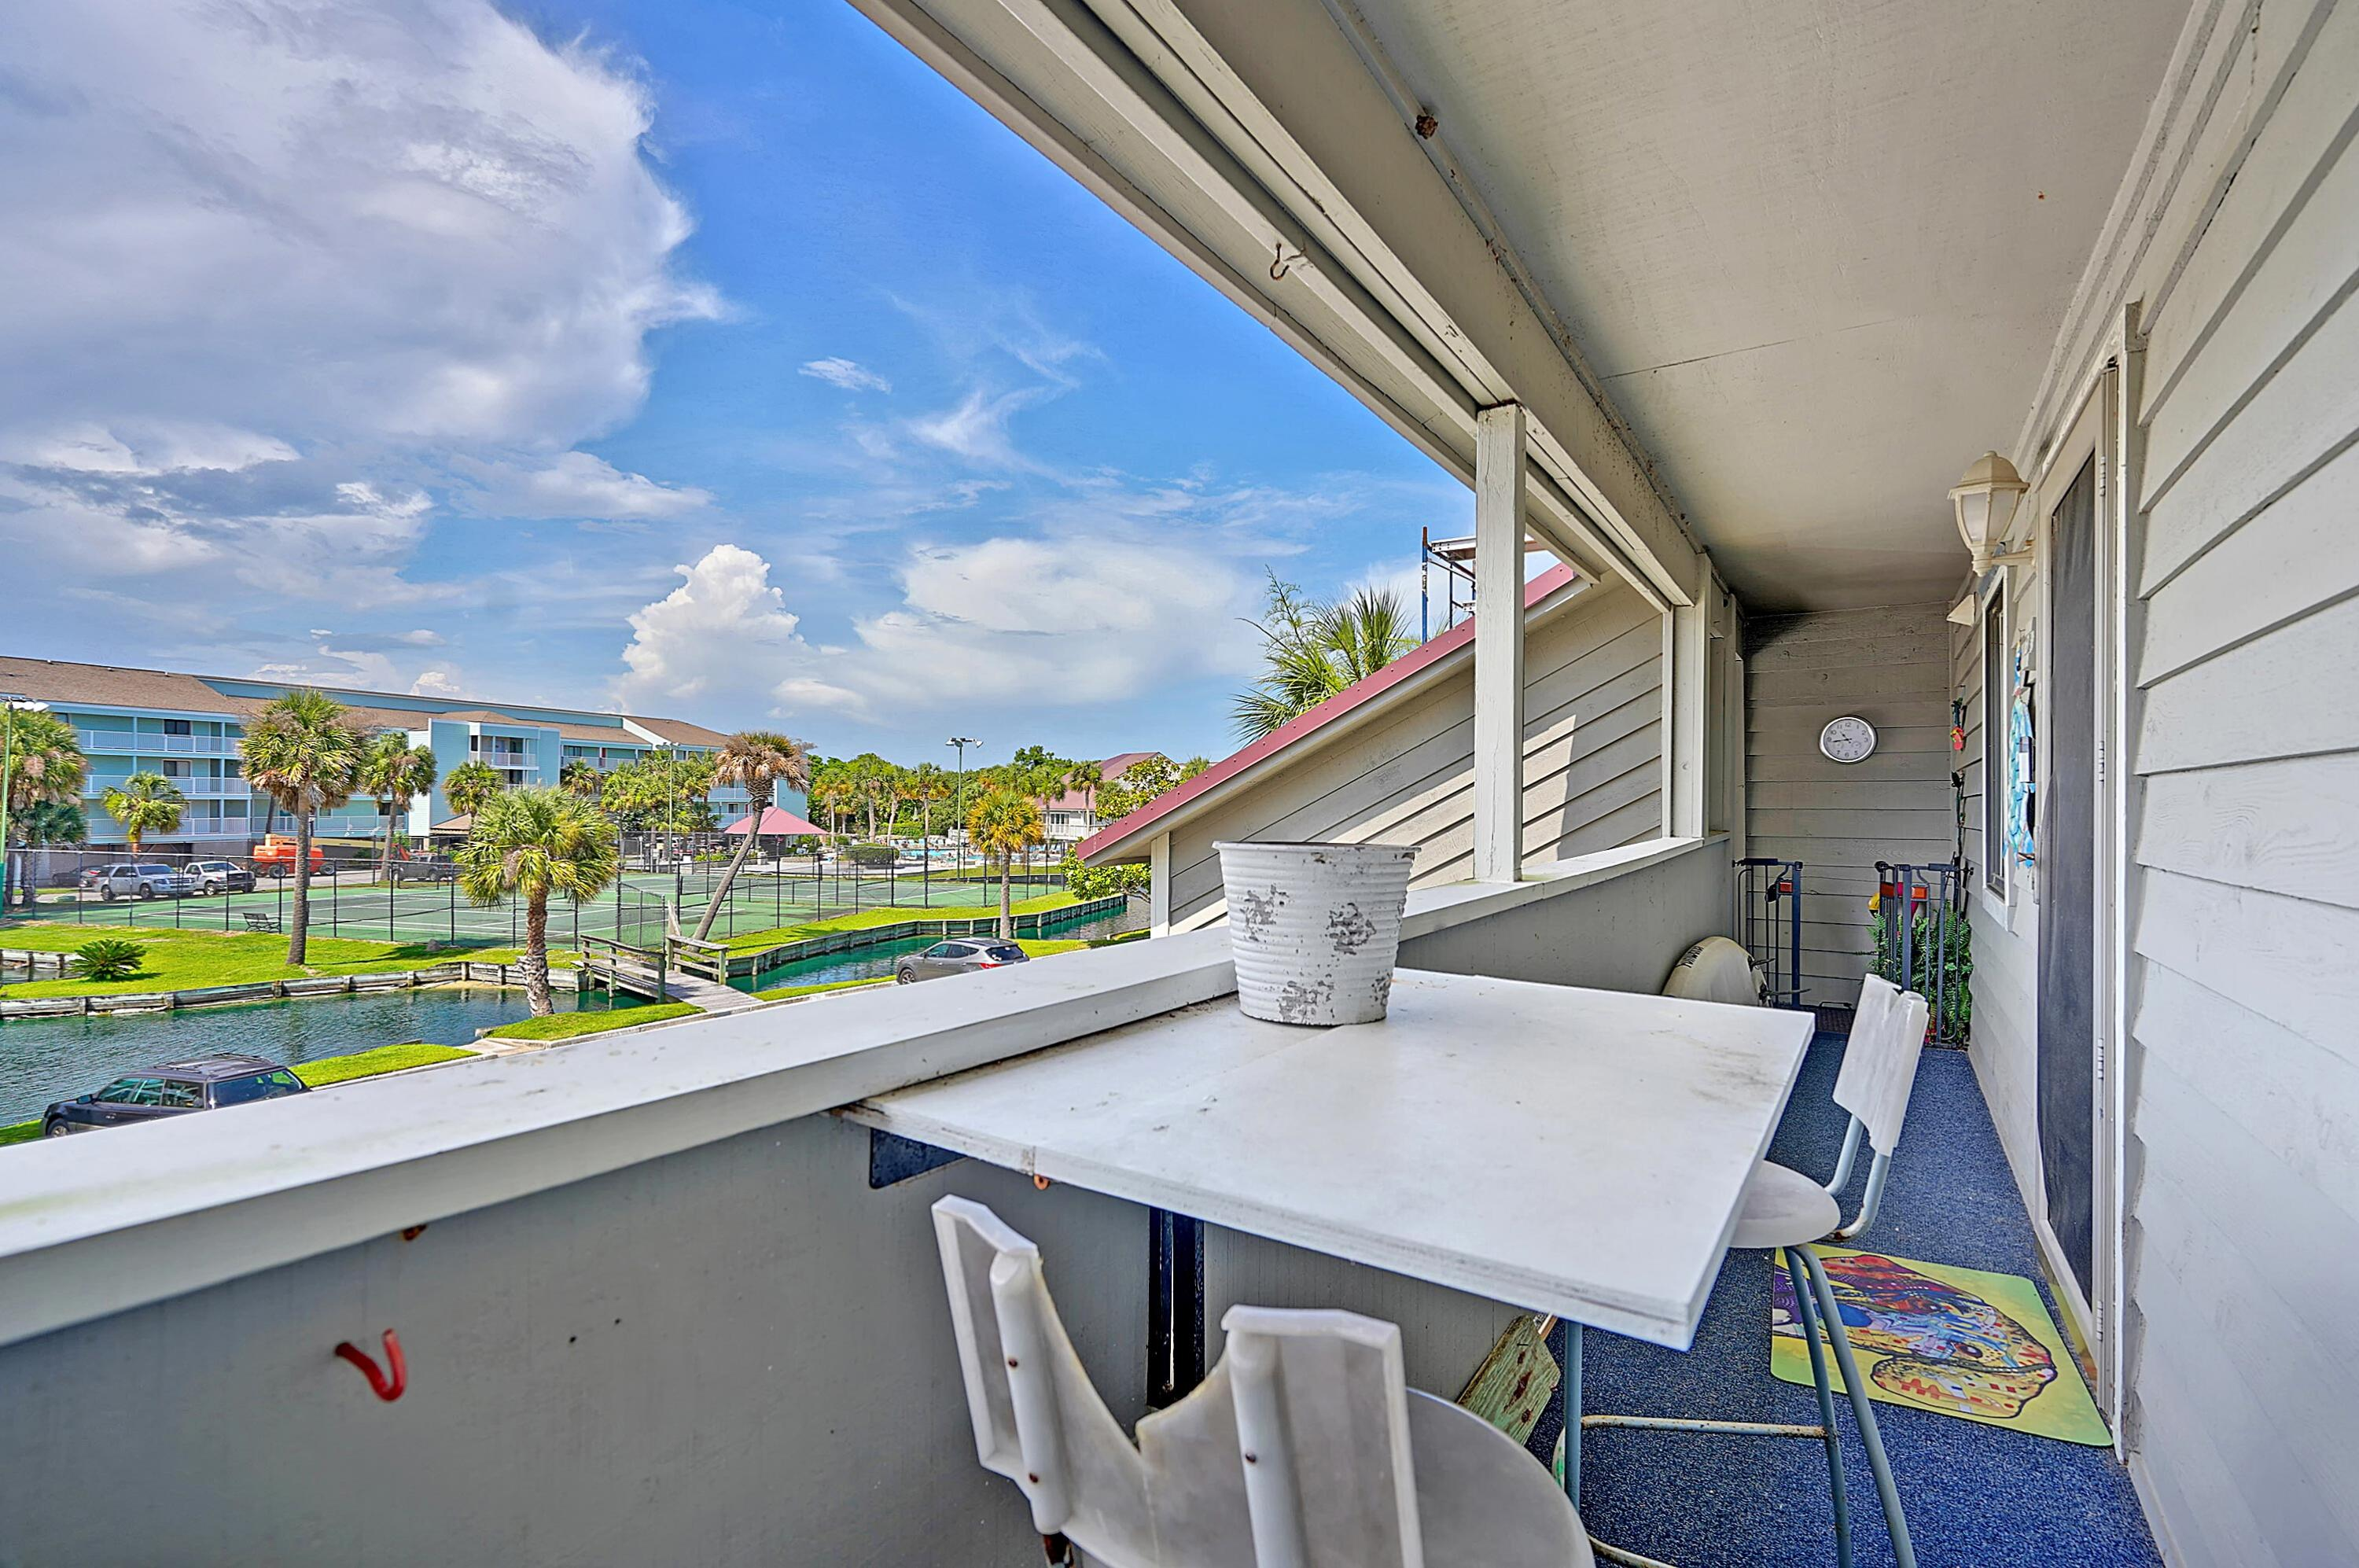 Mariners Cay Homes For Sale - 63 Mariners Cay, Folly Beach, SC - 8